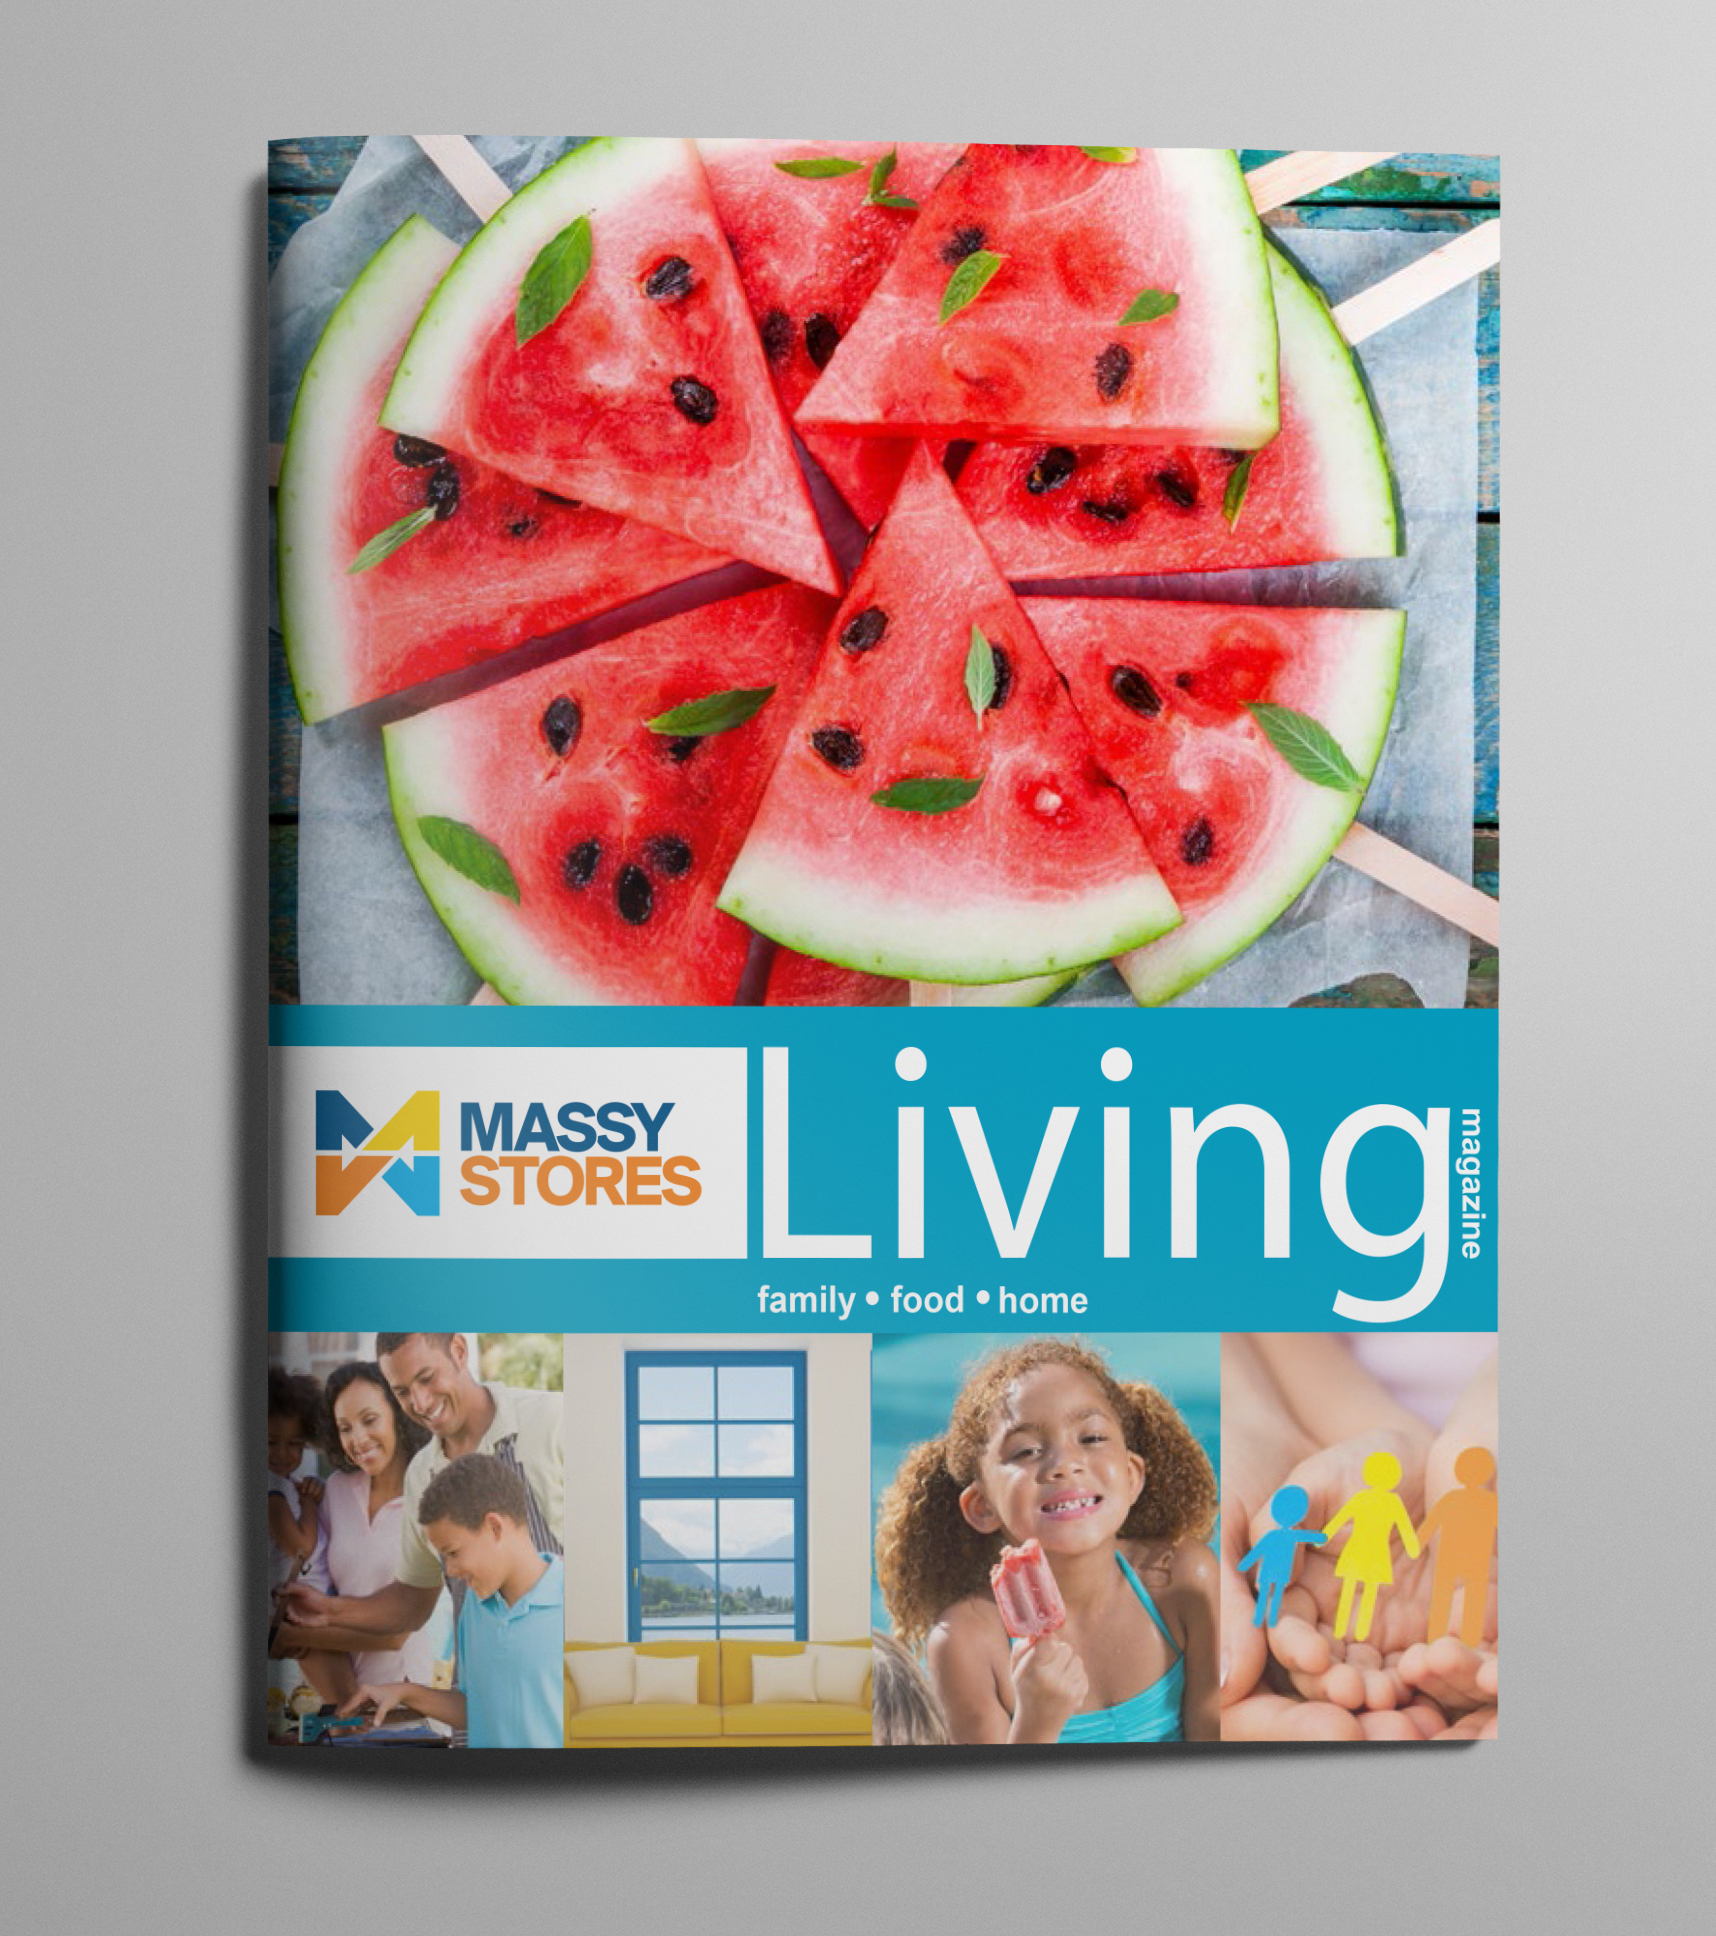 Massy Living Issue 1(Premier Issue) - Client: Phoenix Communications Ltd.Description: Design and Layout Artwork for Massy Living, the first regional magazine published by Phoenix Communications for Massy Stores Ltd. This magazine features delicious